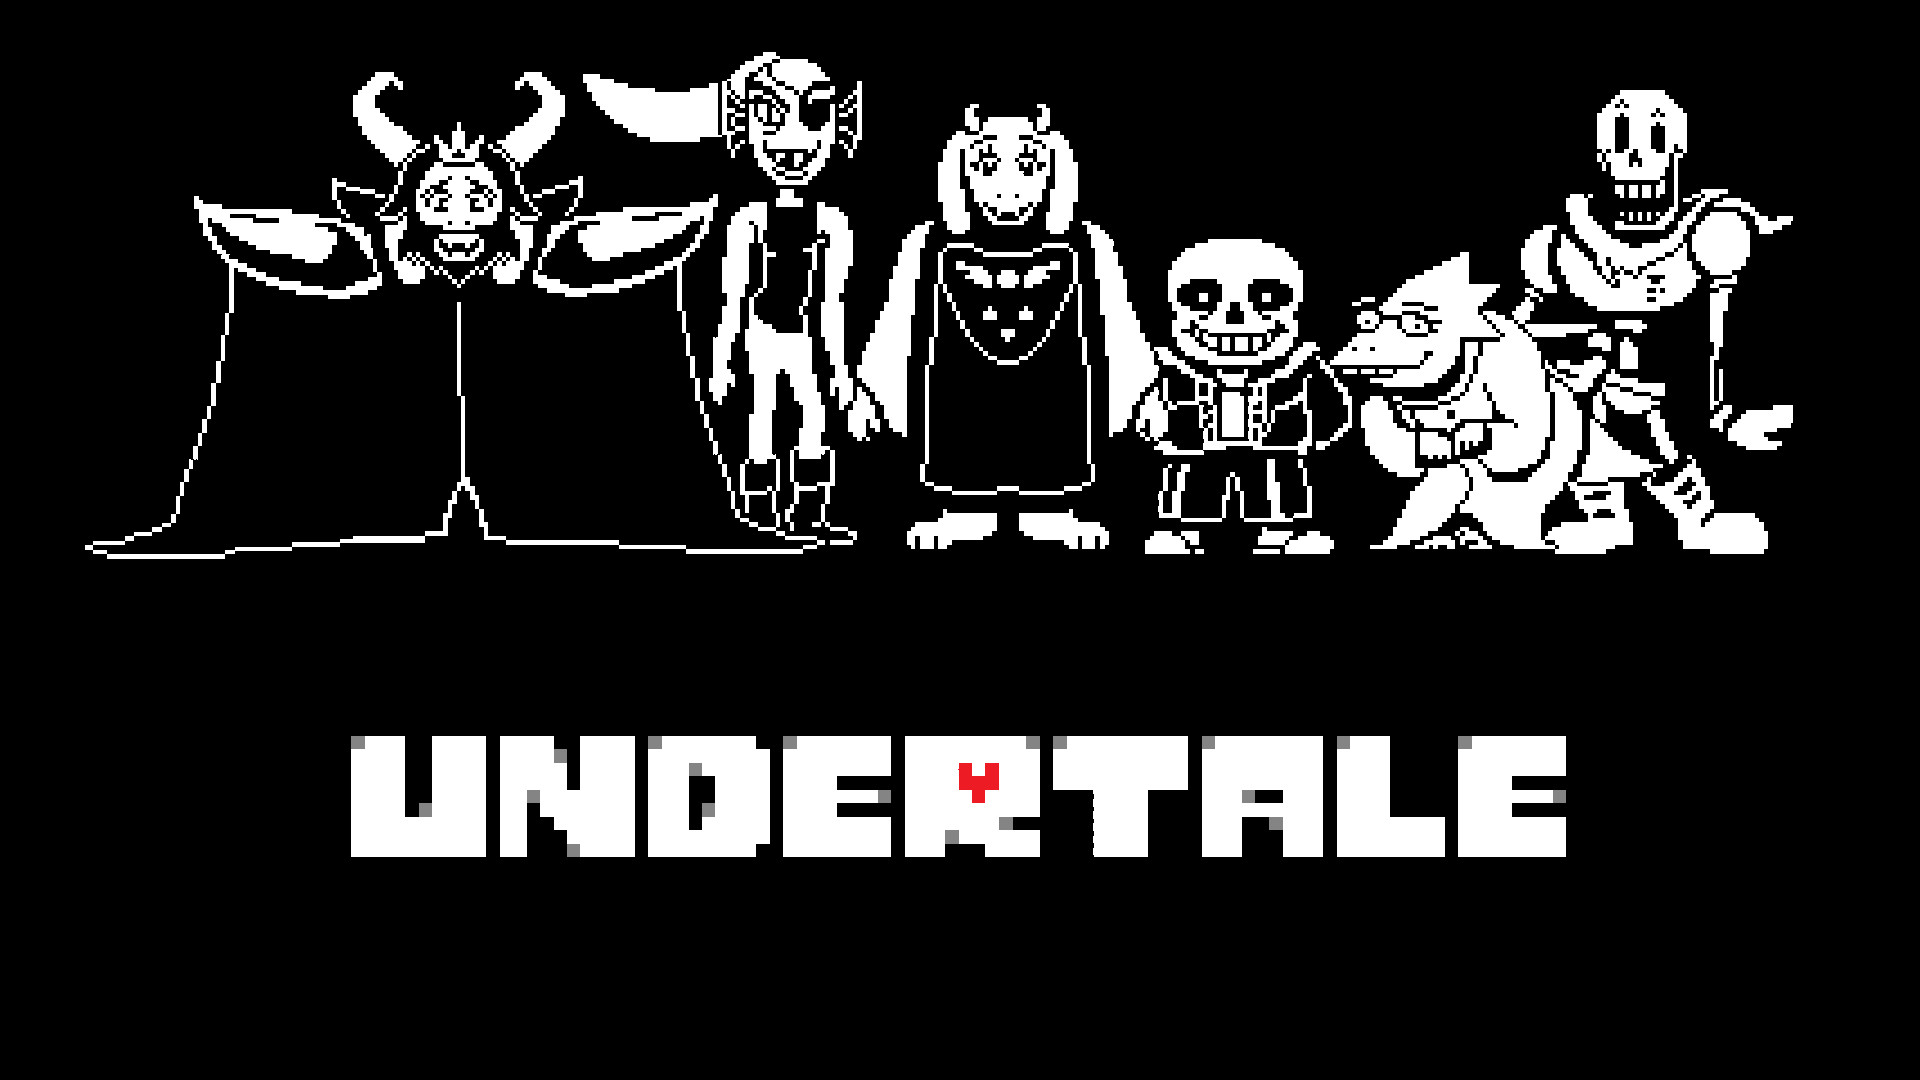 undertale characters – – Yahoo Image Search Results